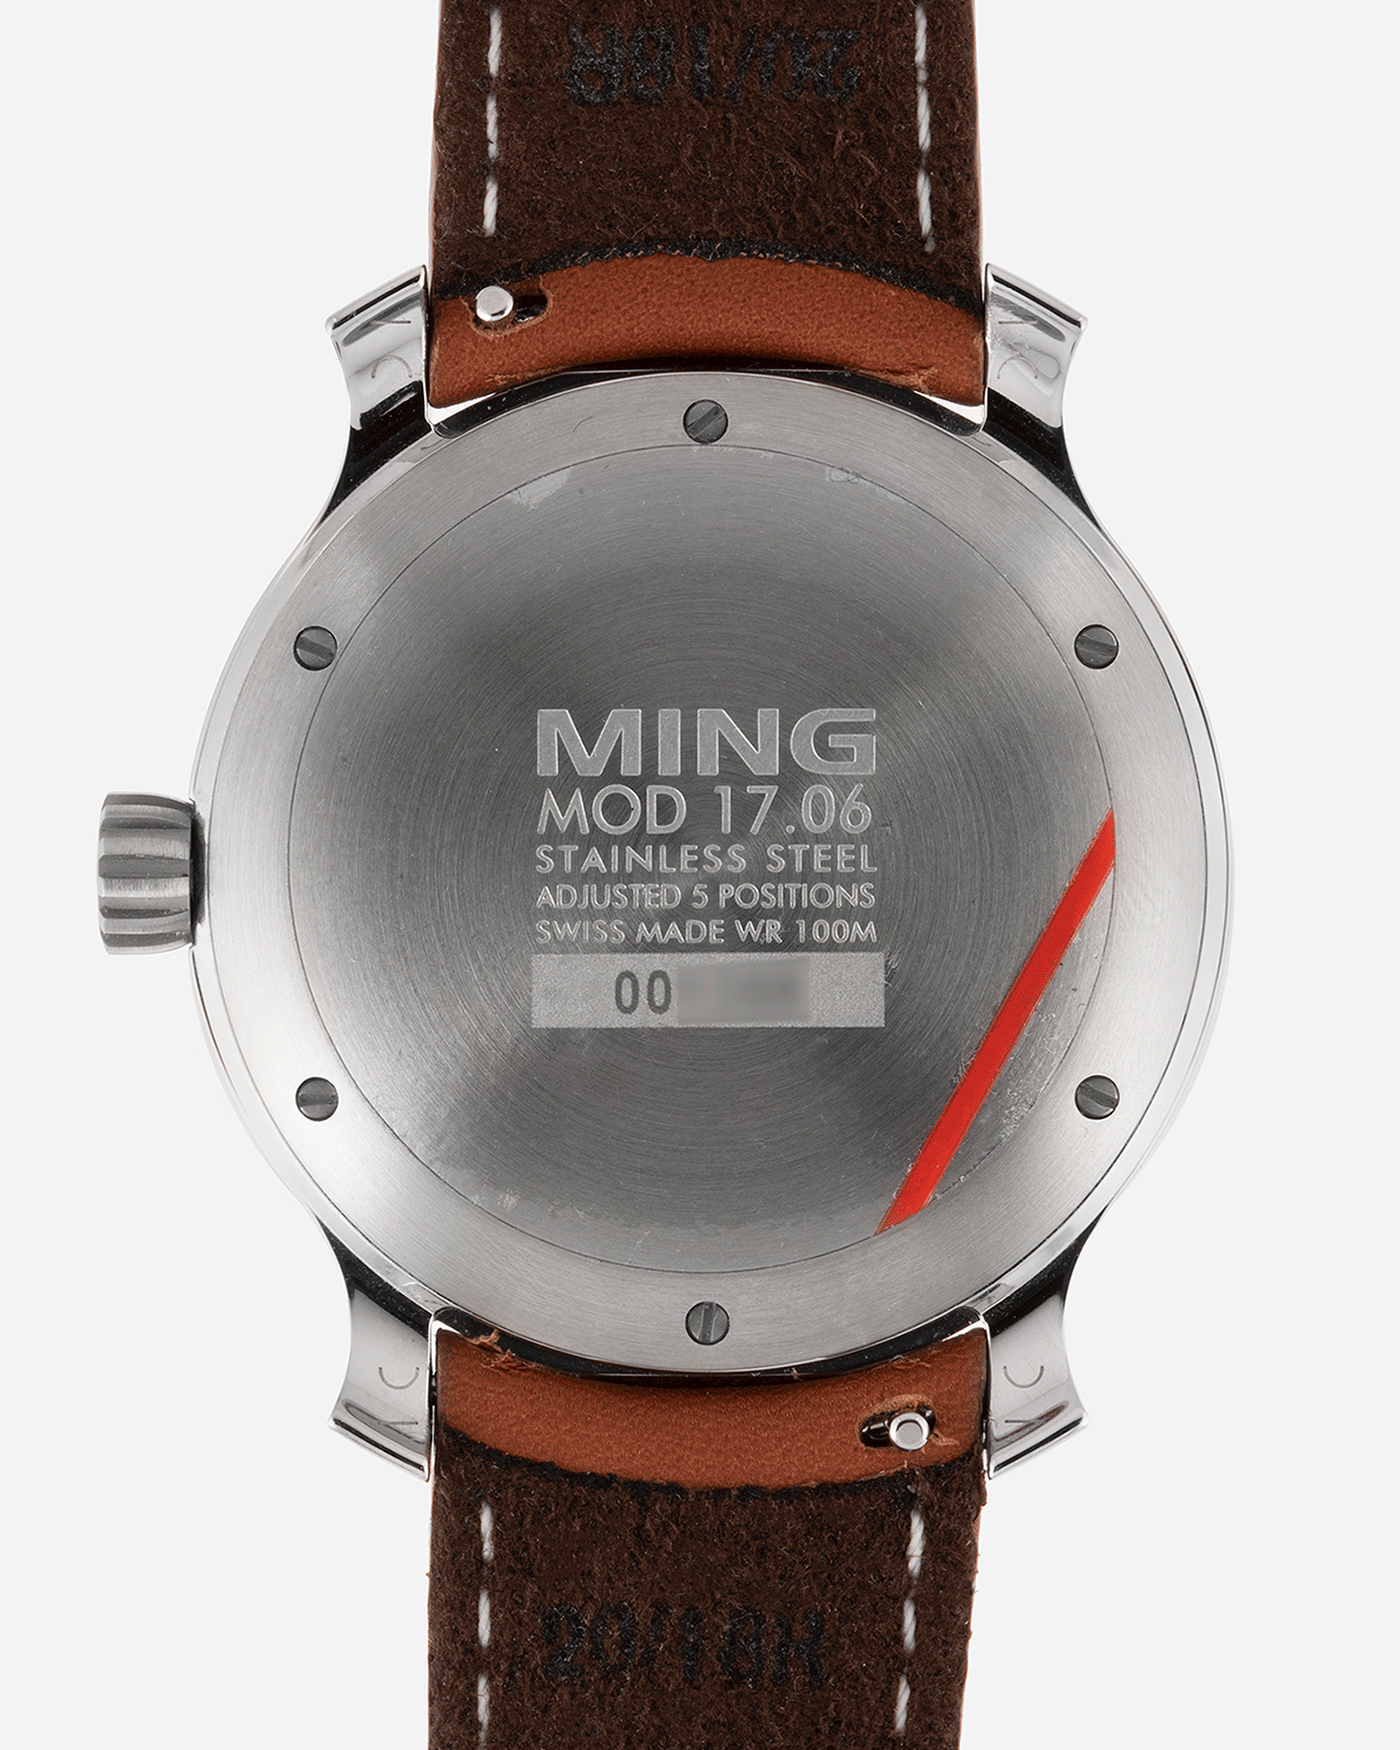 Brand: Ming Year: 2019 Model: 17.06 Material: Stainless Steel Movement: Heavily Modified ETA 2824-2 Case Diameter: 38mm Strap: Jean Rousseau Brown Smooth Calf for MING